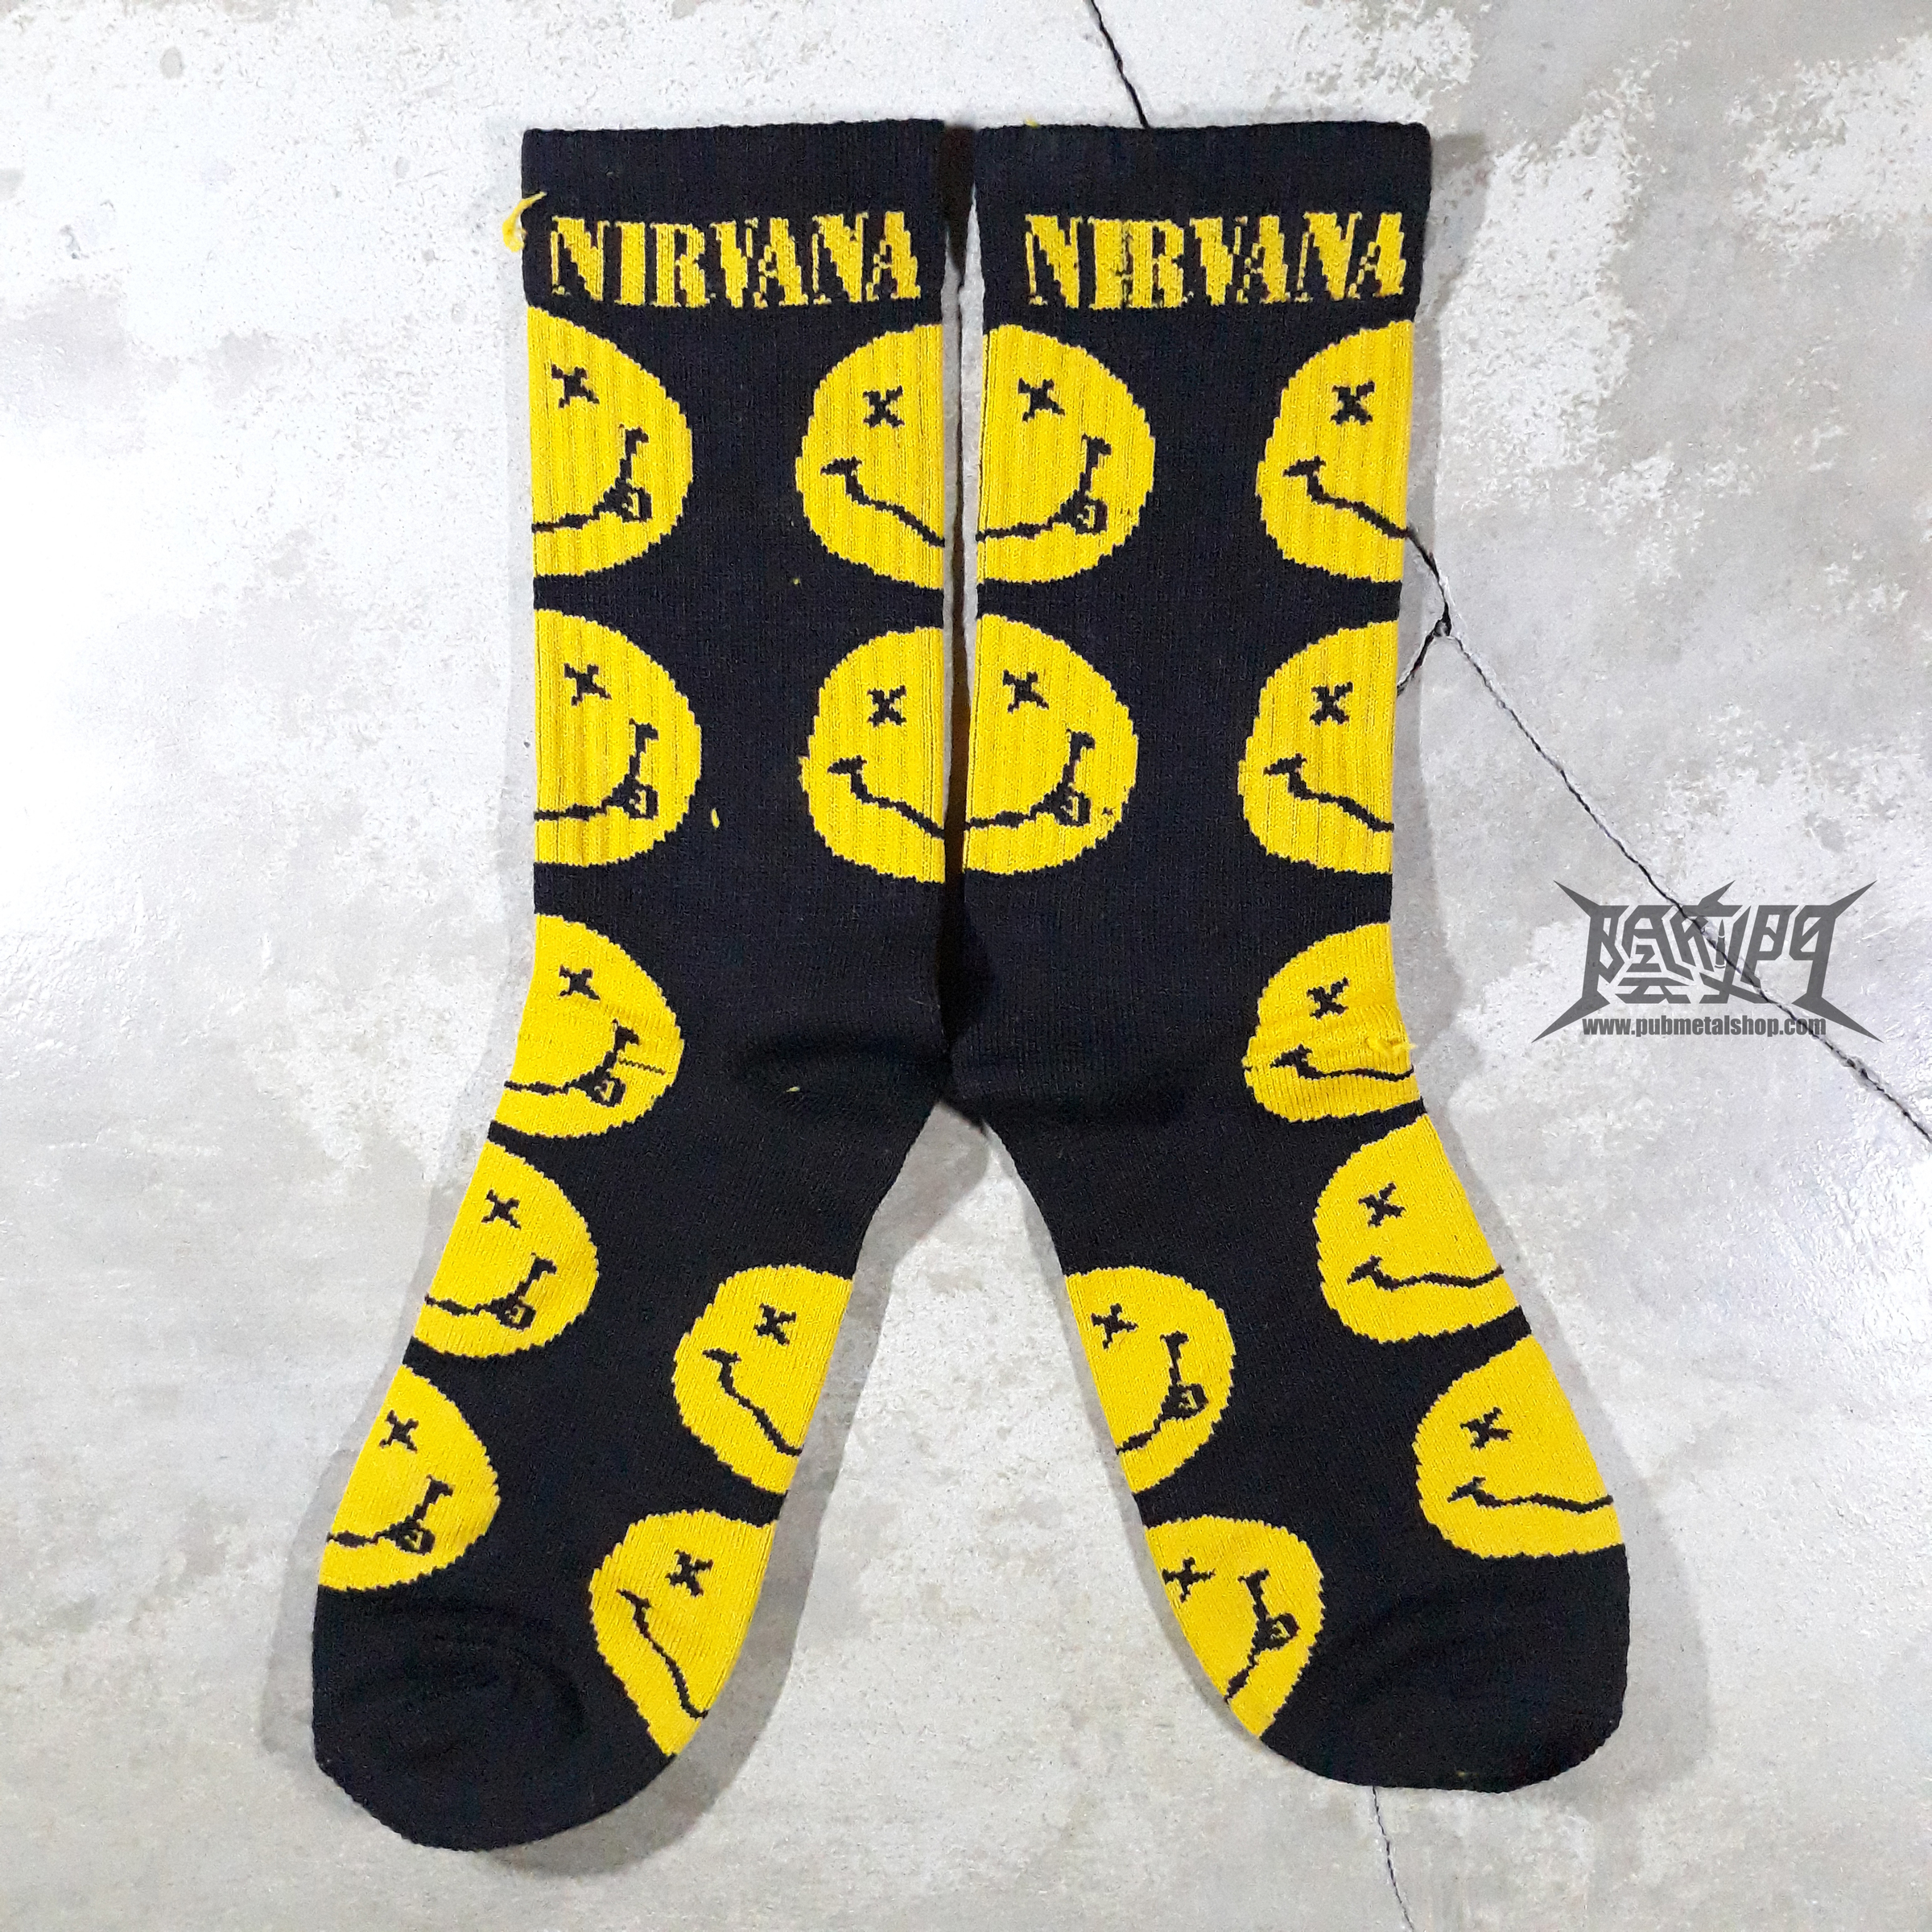 Nirvana Smiley face sock.jpg